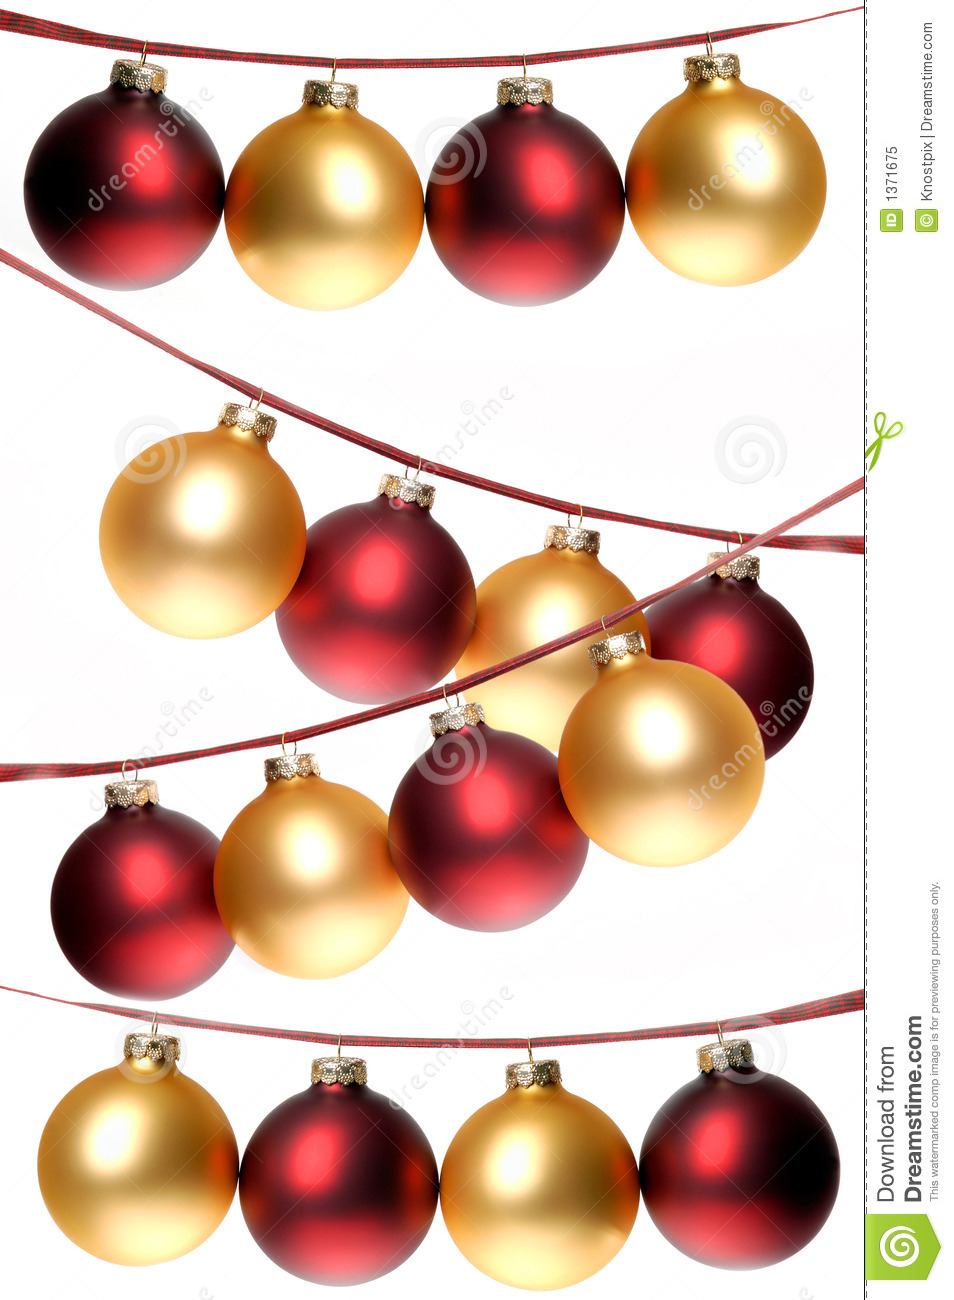 red and gold christmas ornaments strung in rows on plaid ribbon stock image image 1371675. Black Bedroom Furniture Sets. Home Design Ideas